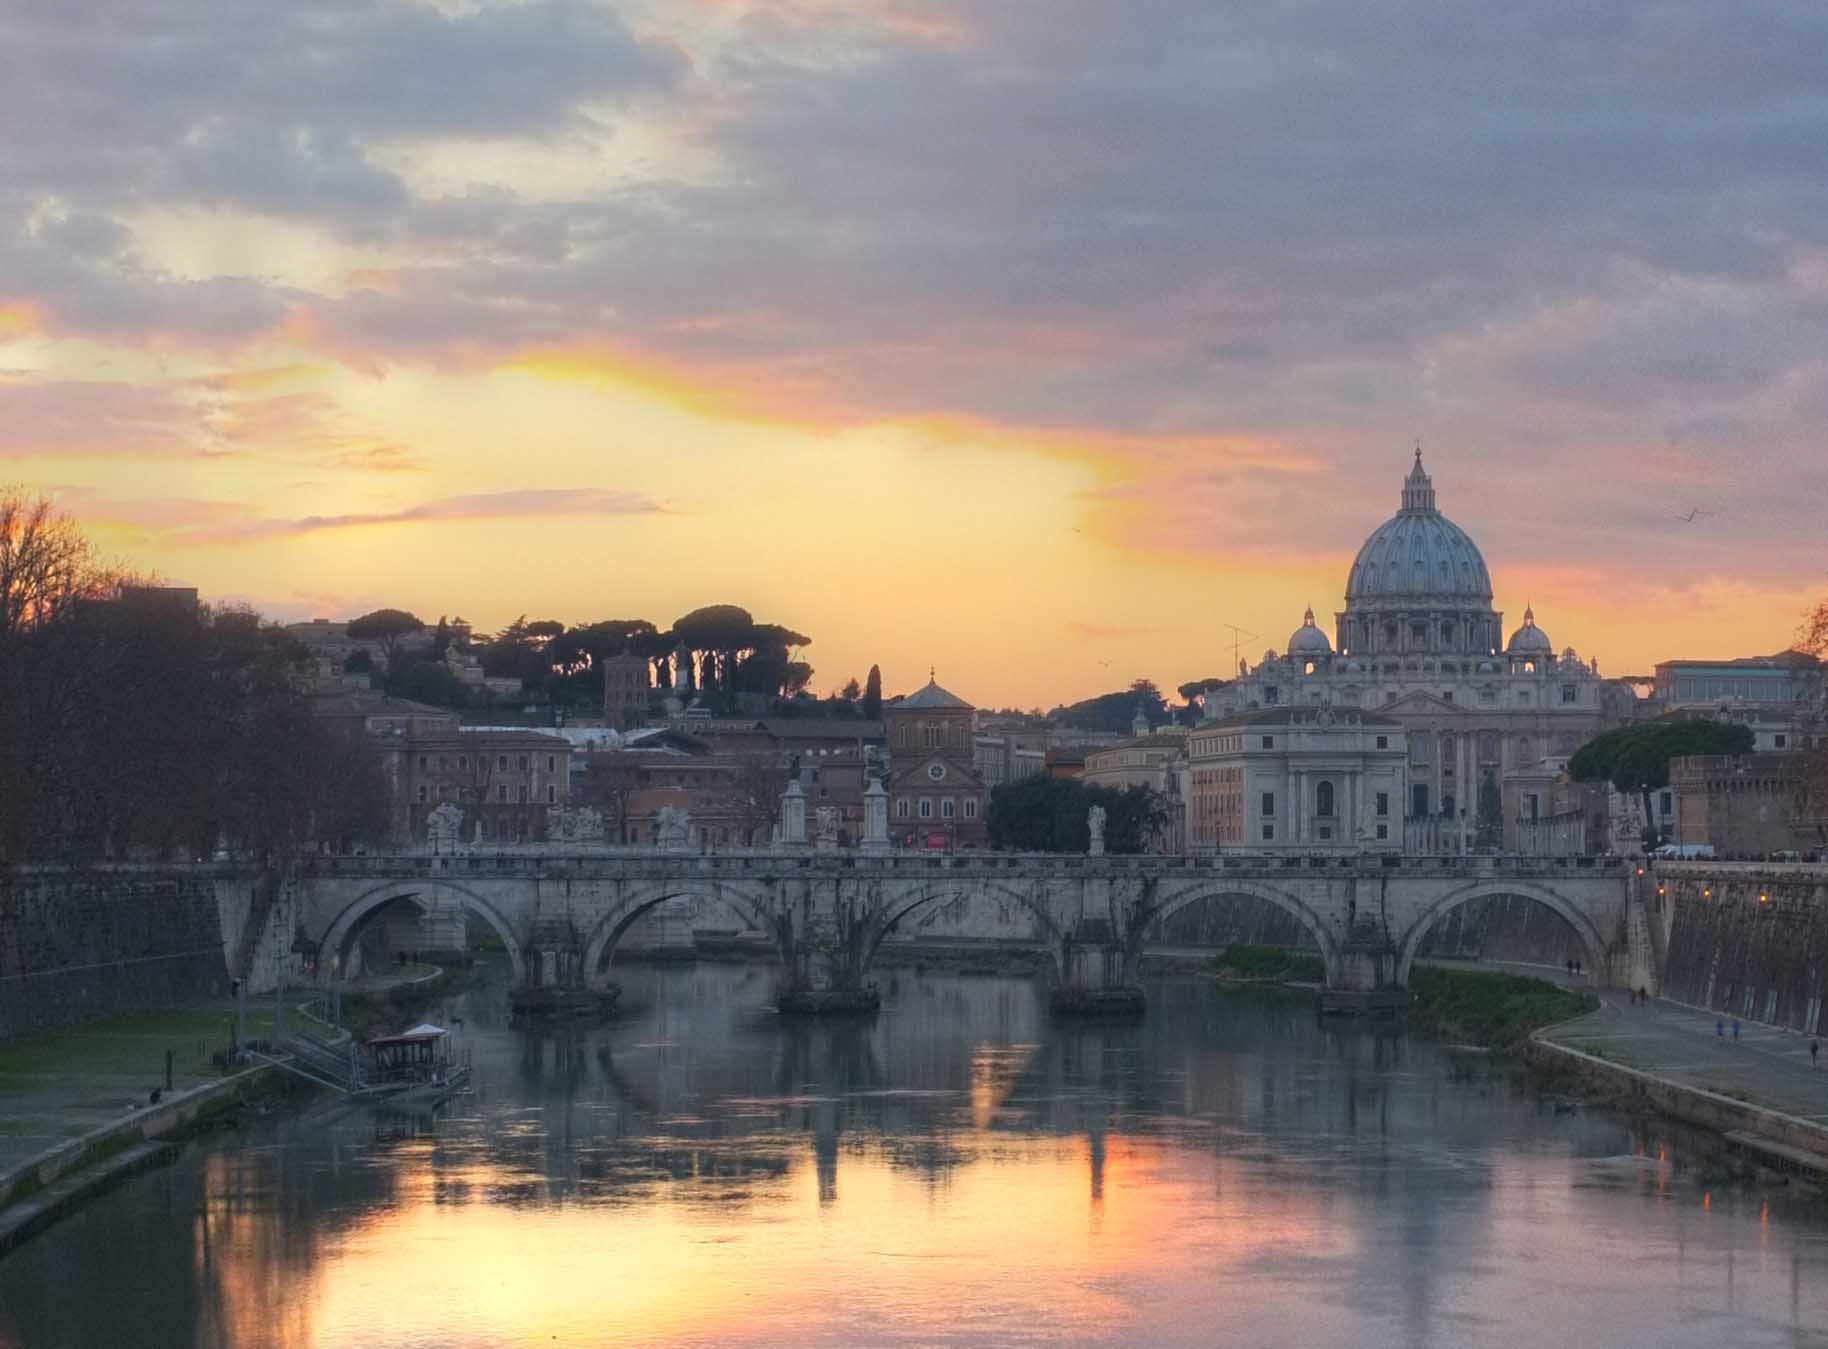 Photograph St. Peters by Nick Gentile on 500px